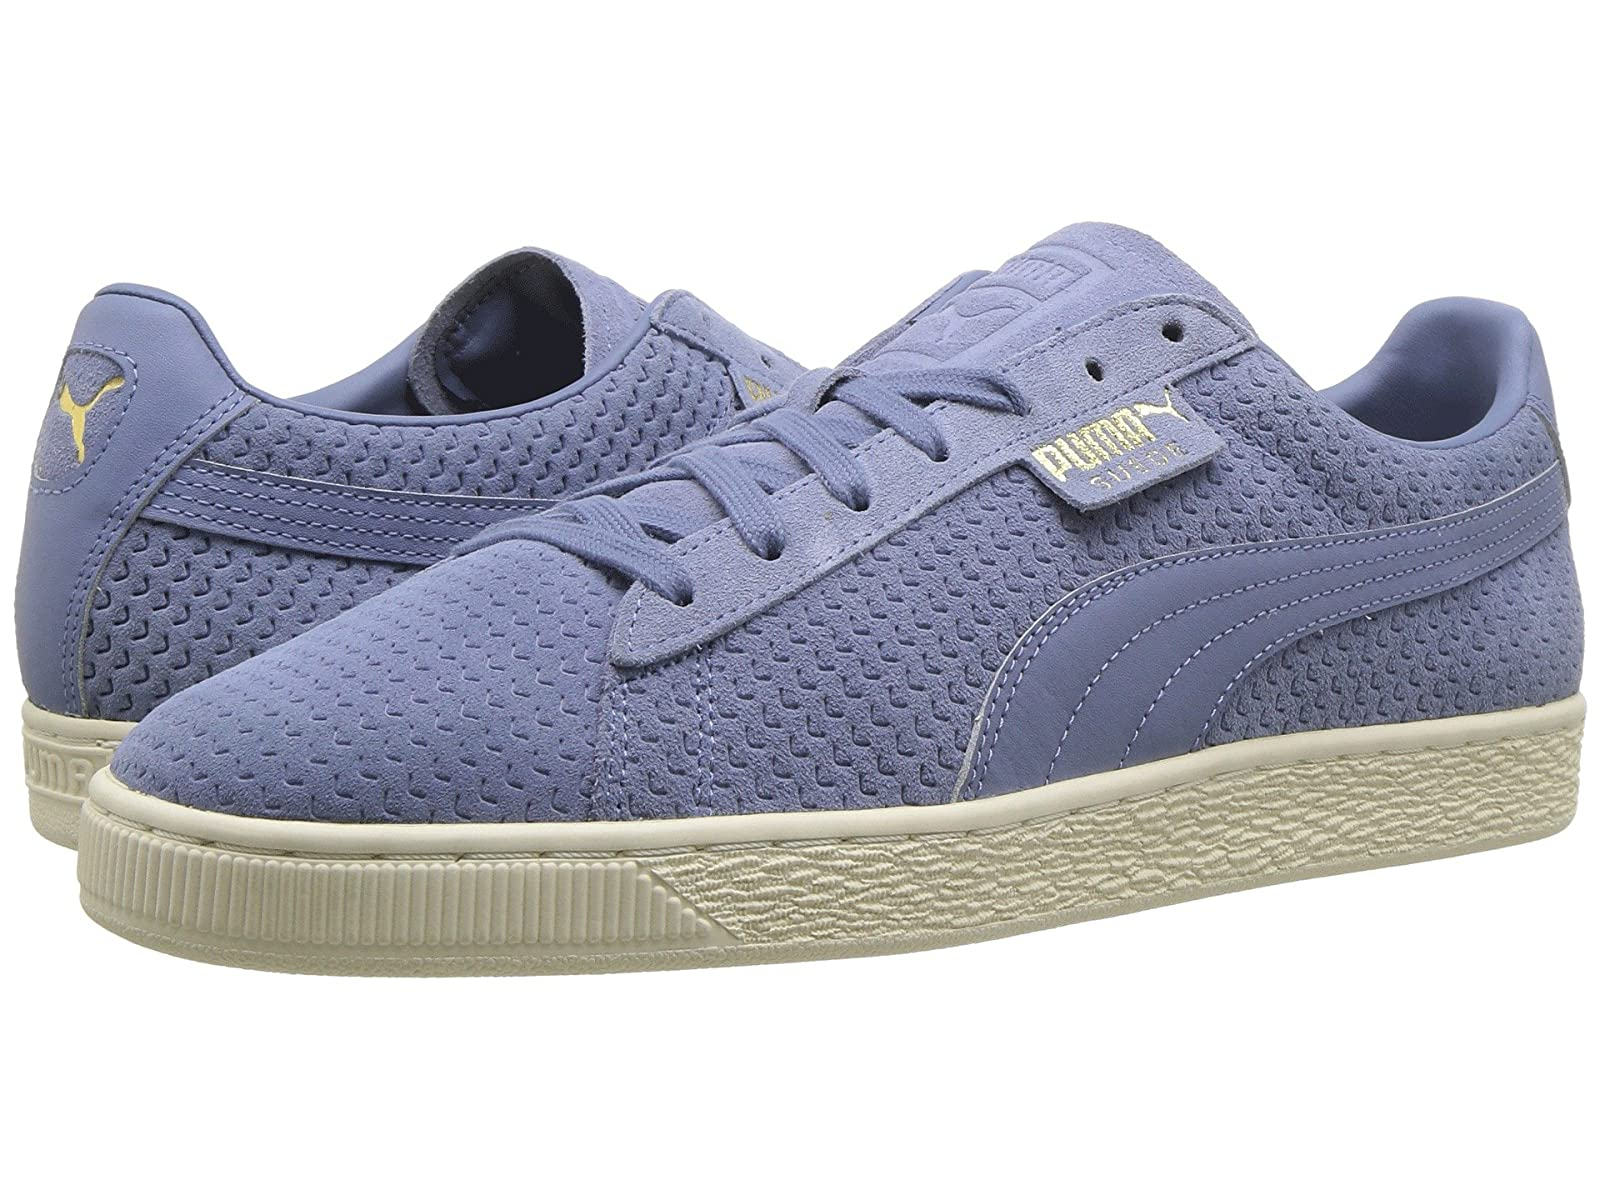 PUMA Suede Classic PerforationCheap and distinctive eye-catching shoes